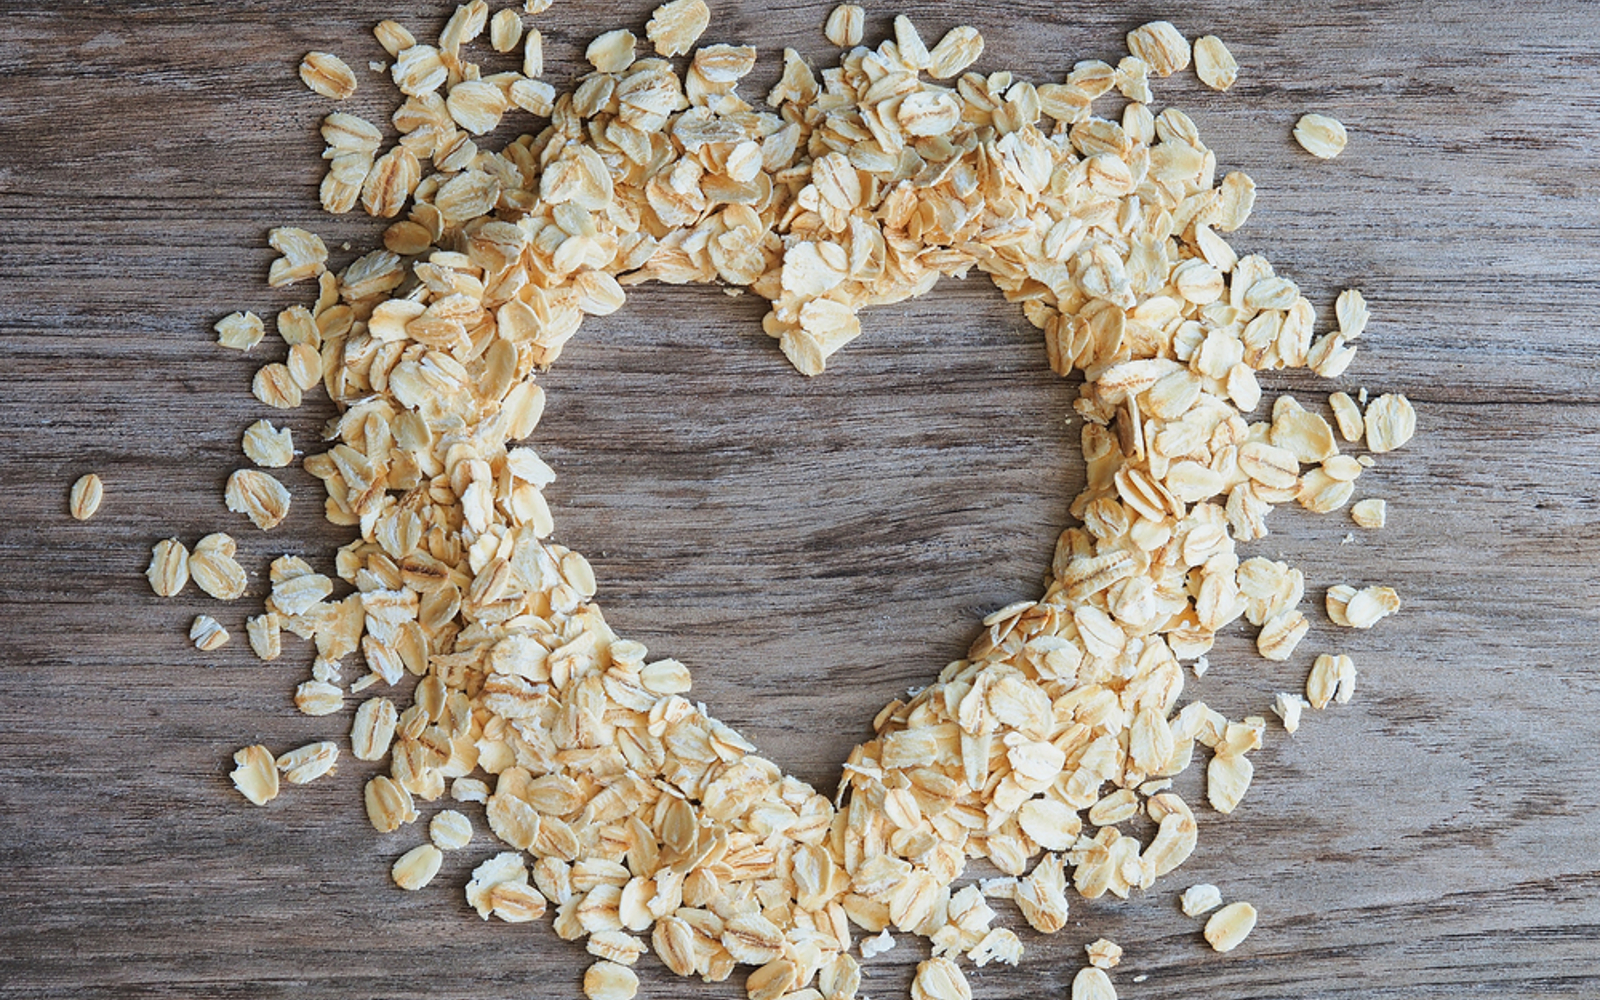 Rolled oats in the shape of a heart